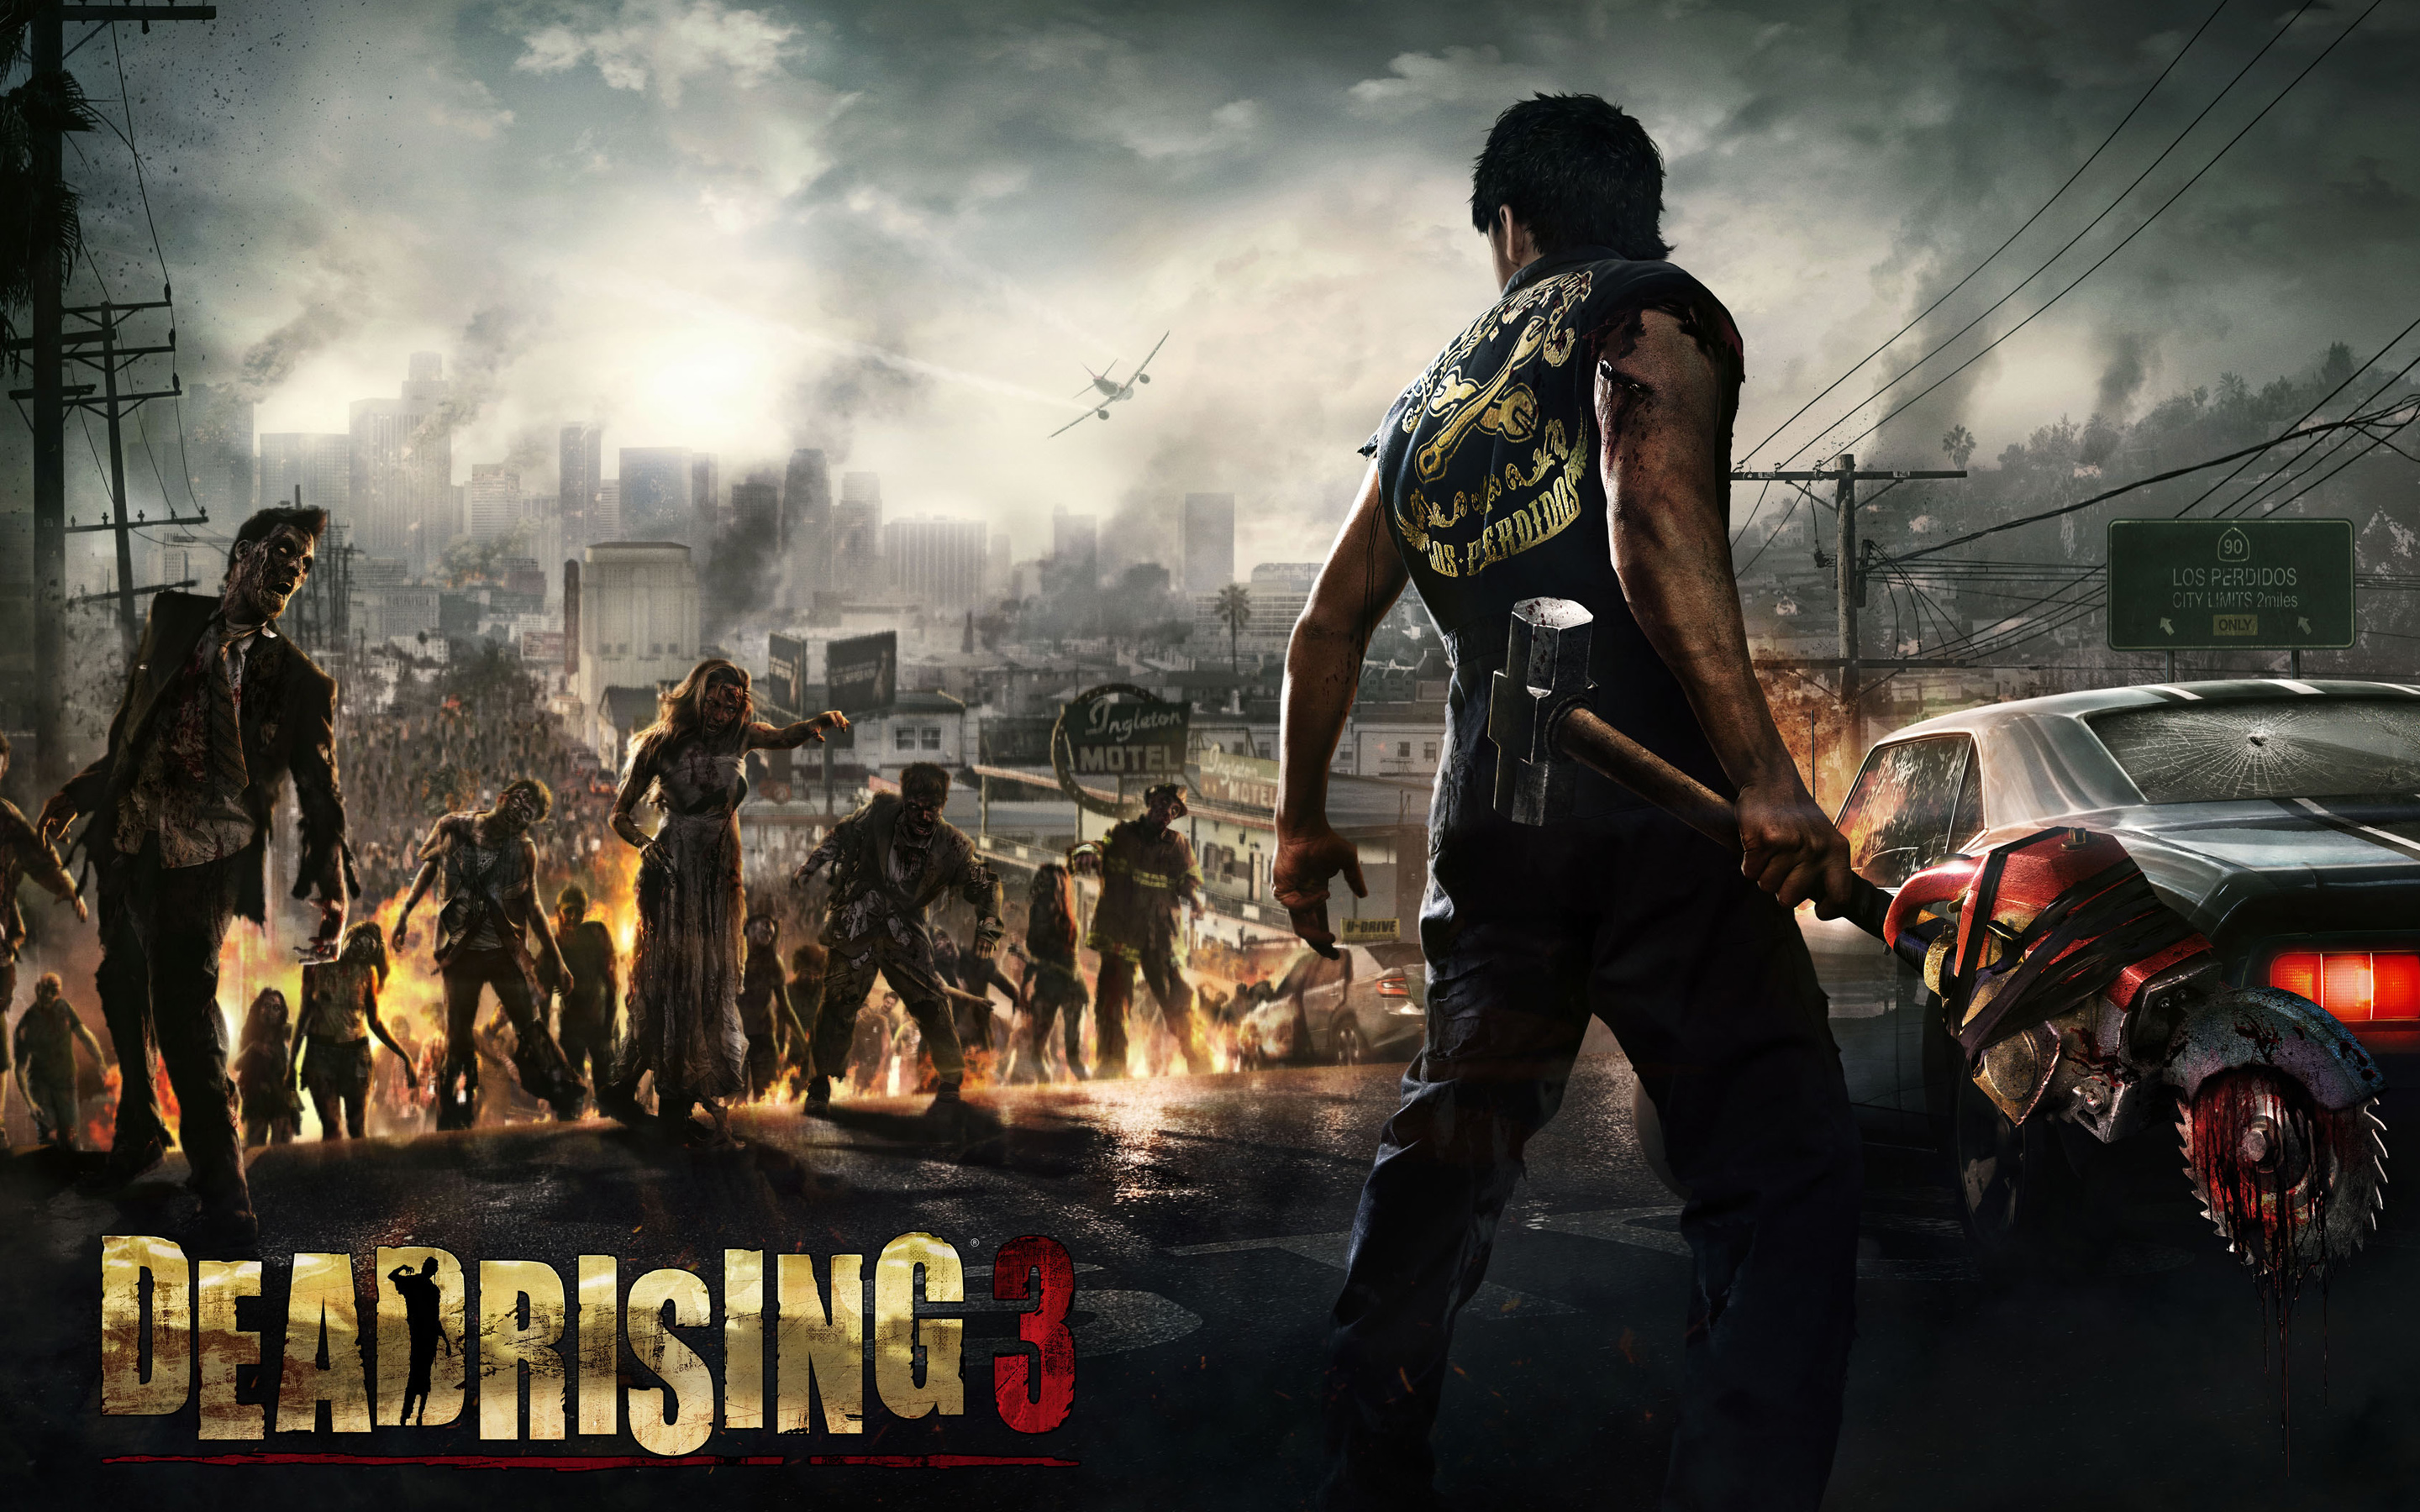 Dead Rising 3 Review: The Future of Zombie-Slaying Today